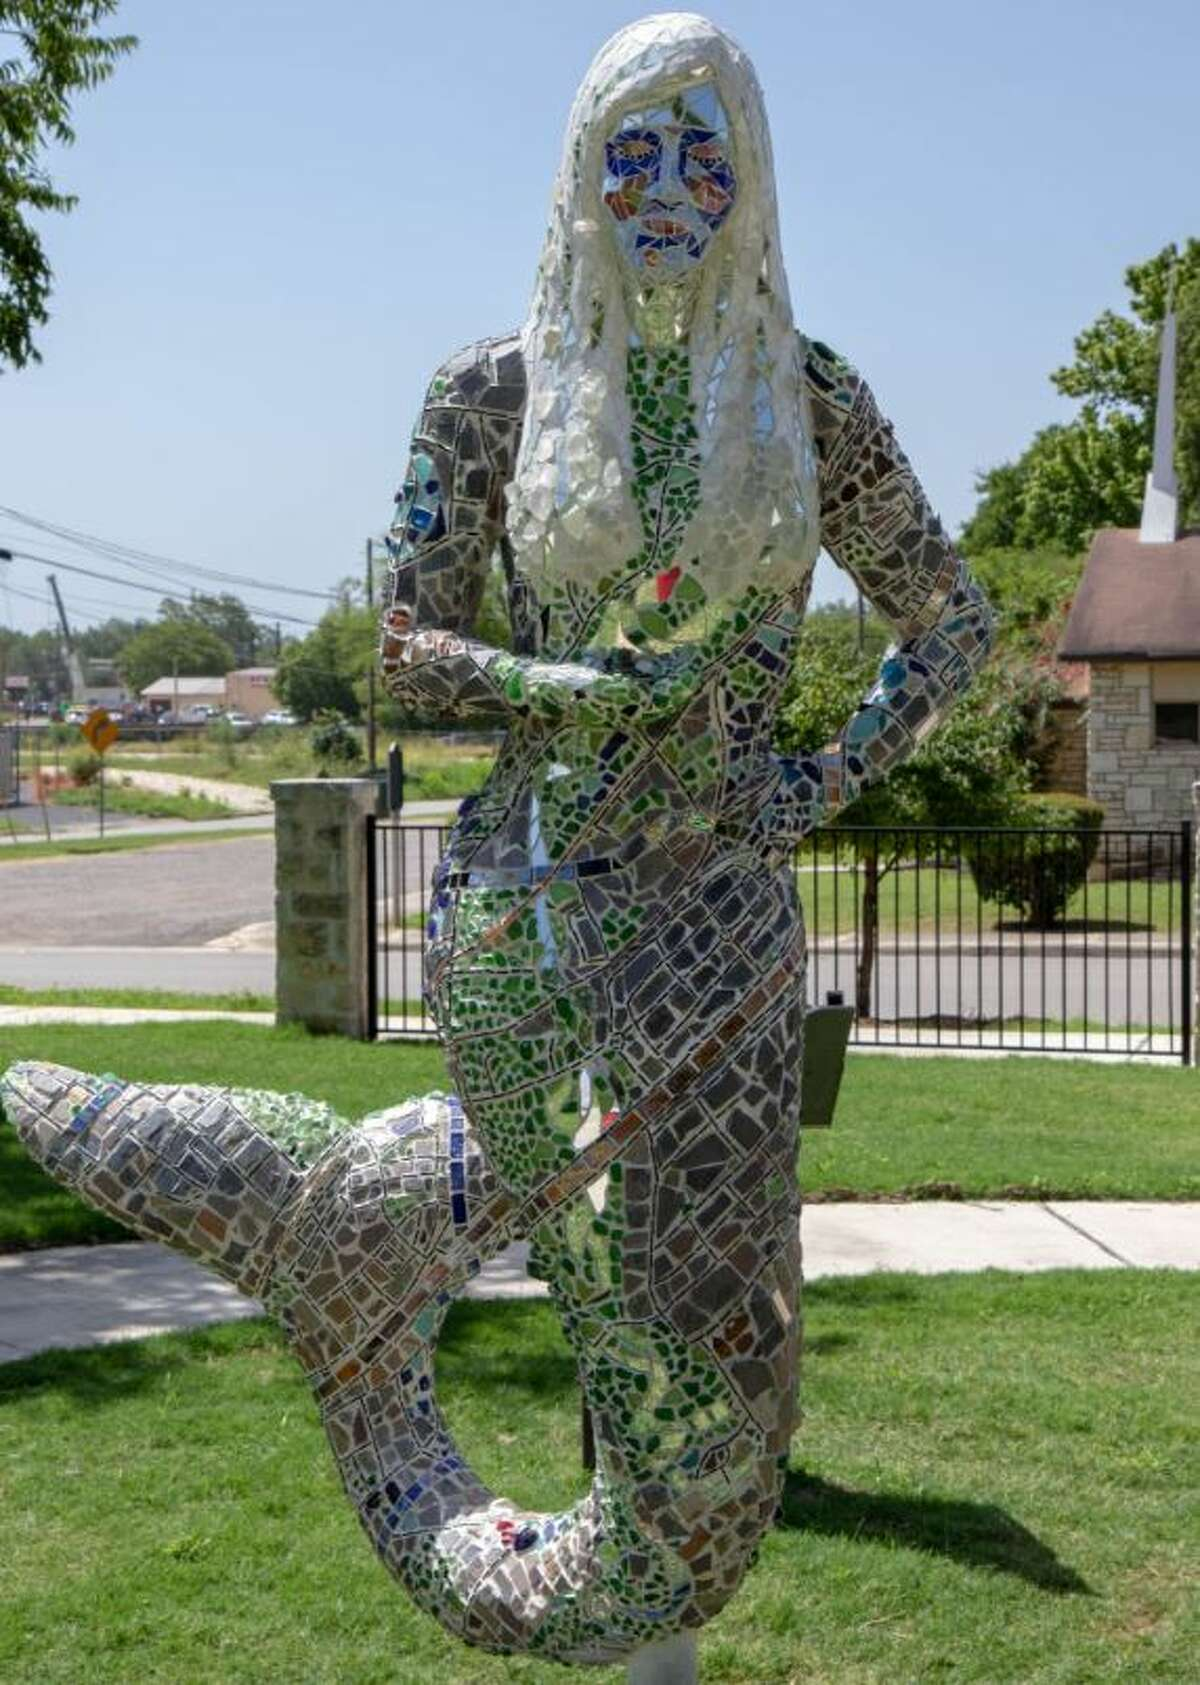 San Marcos has installed 10 mermaid statues in a nod to the city's history and an attempt to promote tourism. This is Mermaid Map.